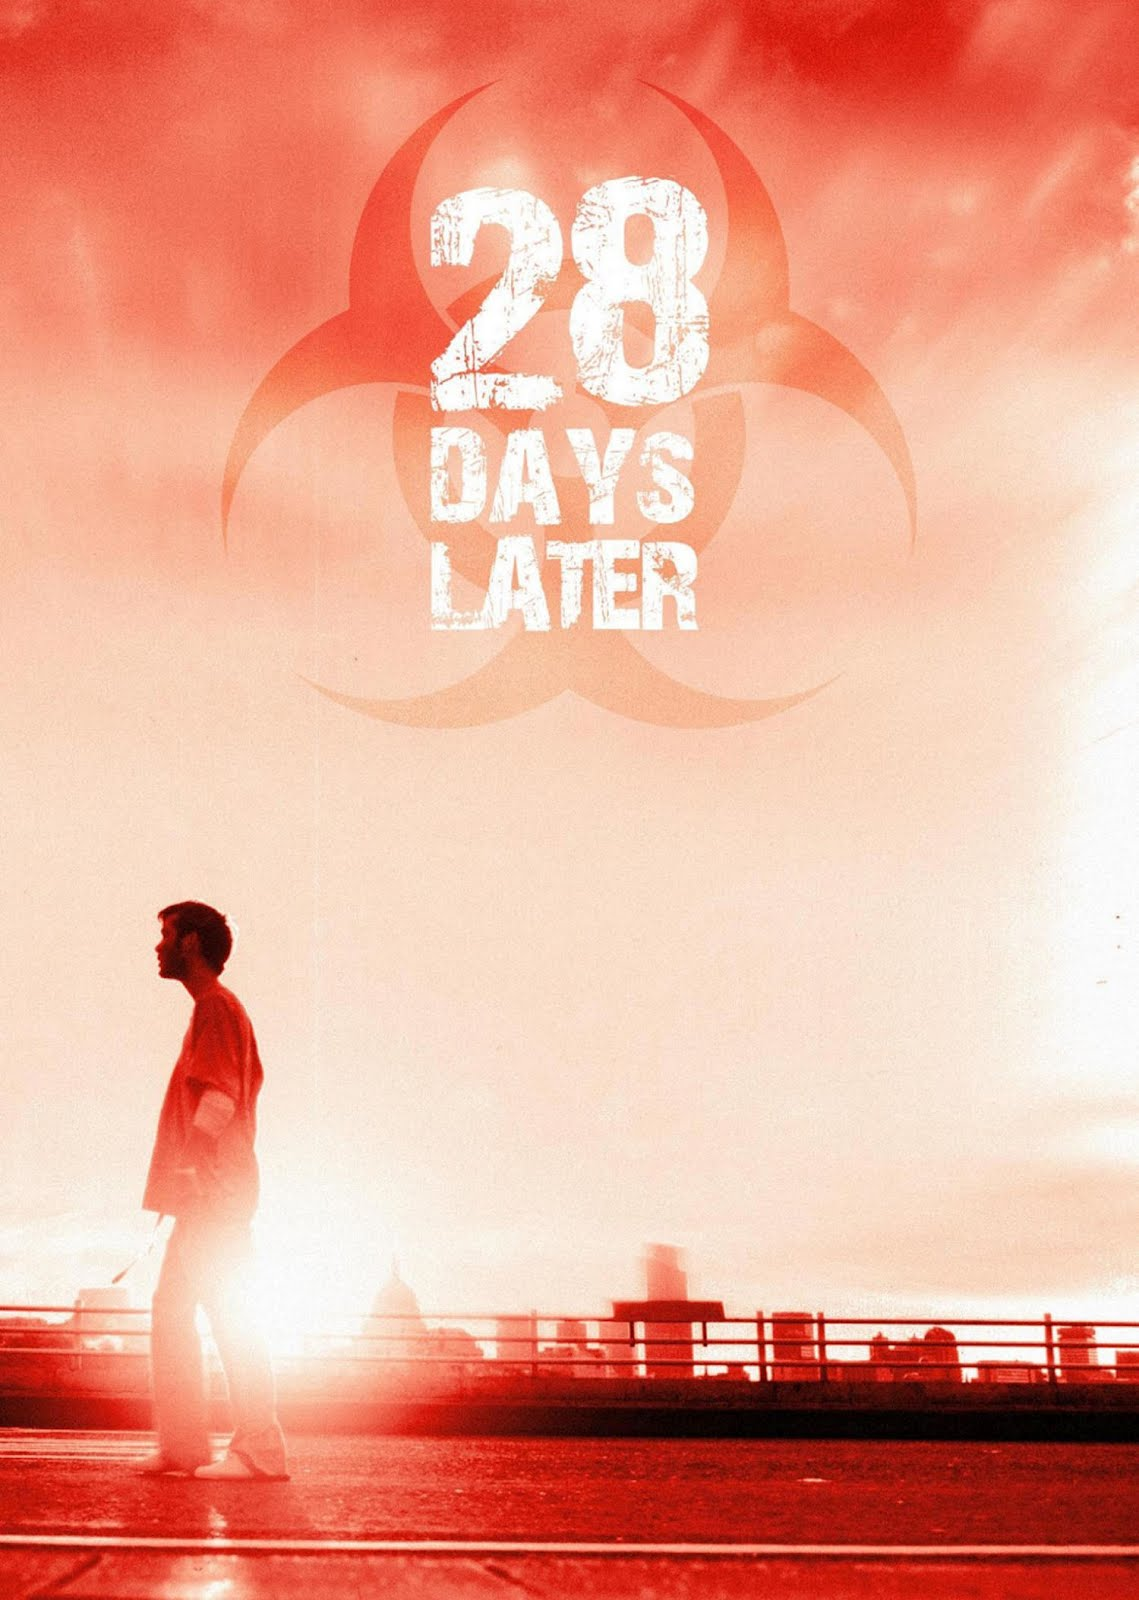 28 days later 28 days later is a 2002 british horror film that was directed by danny boyle it was followed up with a sequel in 2007, entitled 28 weeks later the film was a.